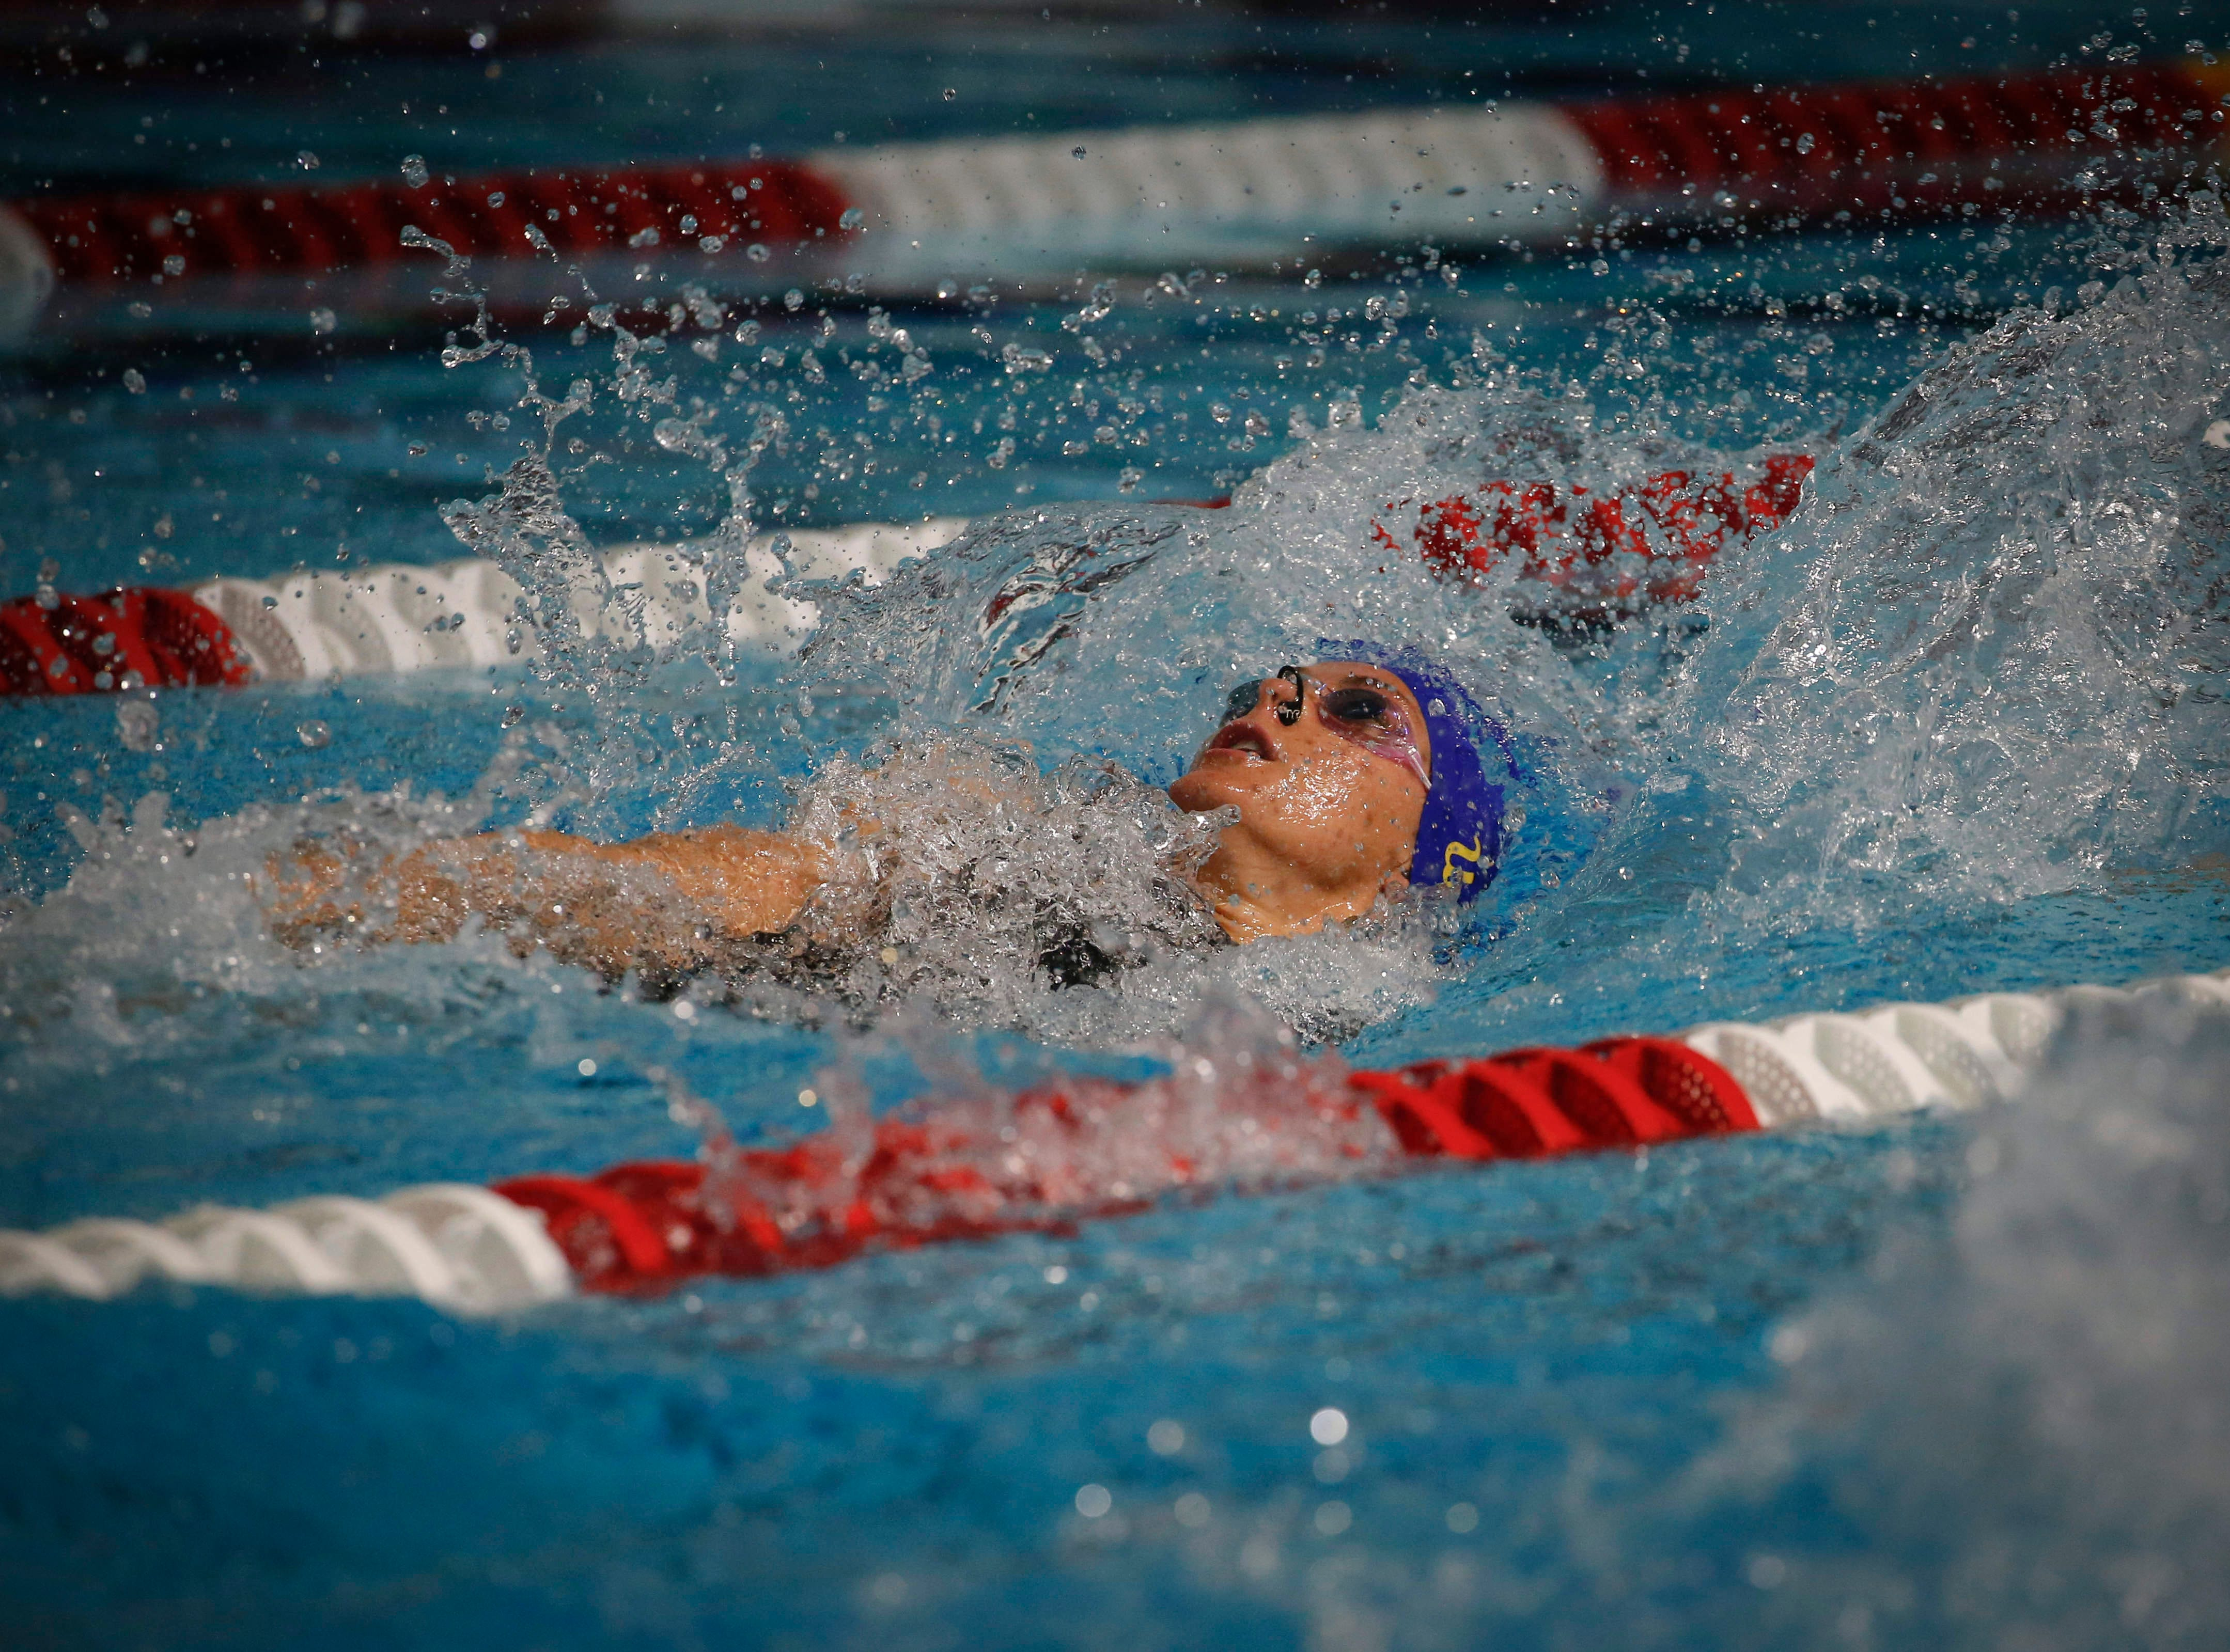 Linnea Mack of San Jose, Calif., and a swimmer at UCLA, competes in the 50-meter backstroke during the 2019 TYR Pro Swim Series on Thursday, March 7, 2019, at the downtown YMCA pool in Des Moines.